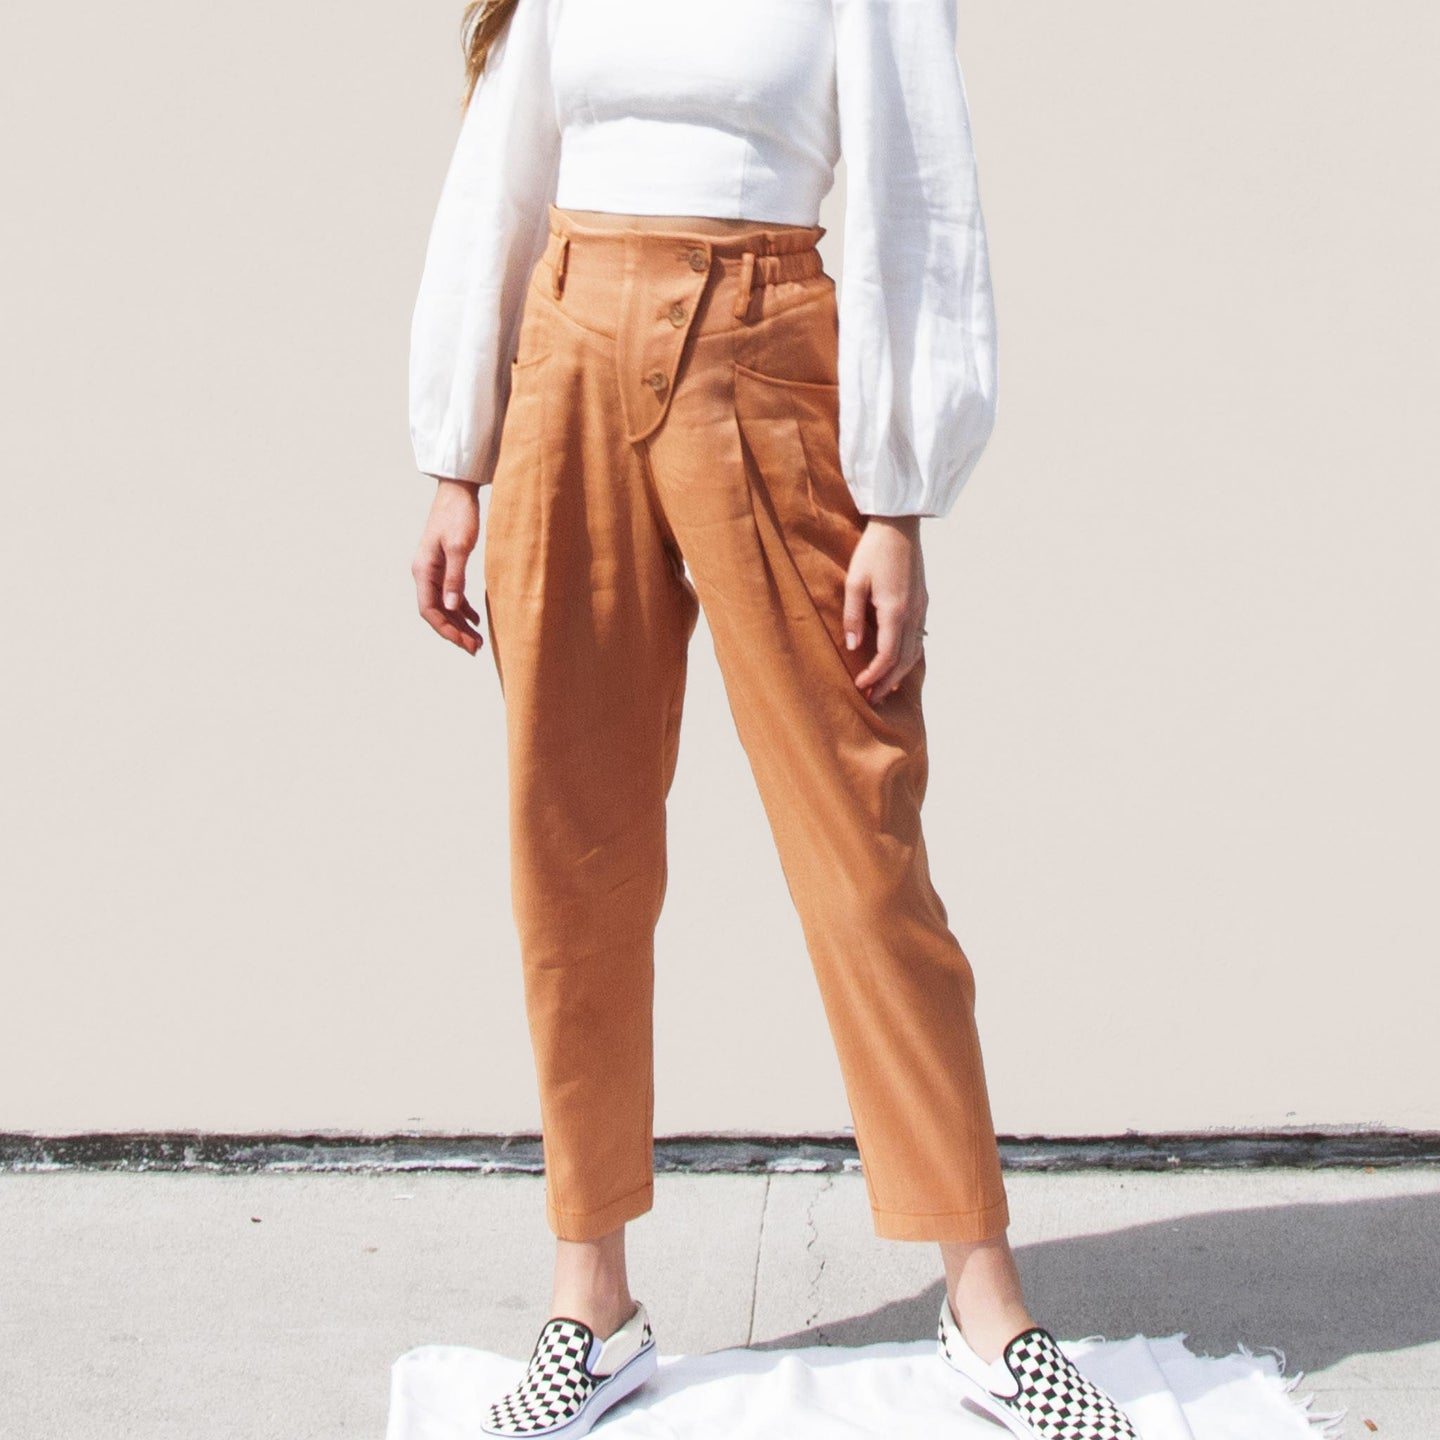 Rejina Pyo - Larissa Trousers, front view, available at LCD.